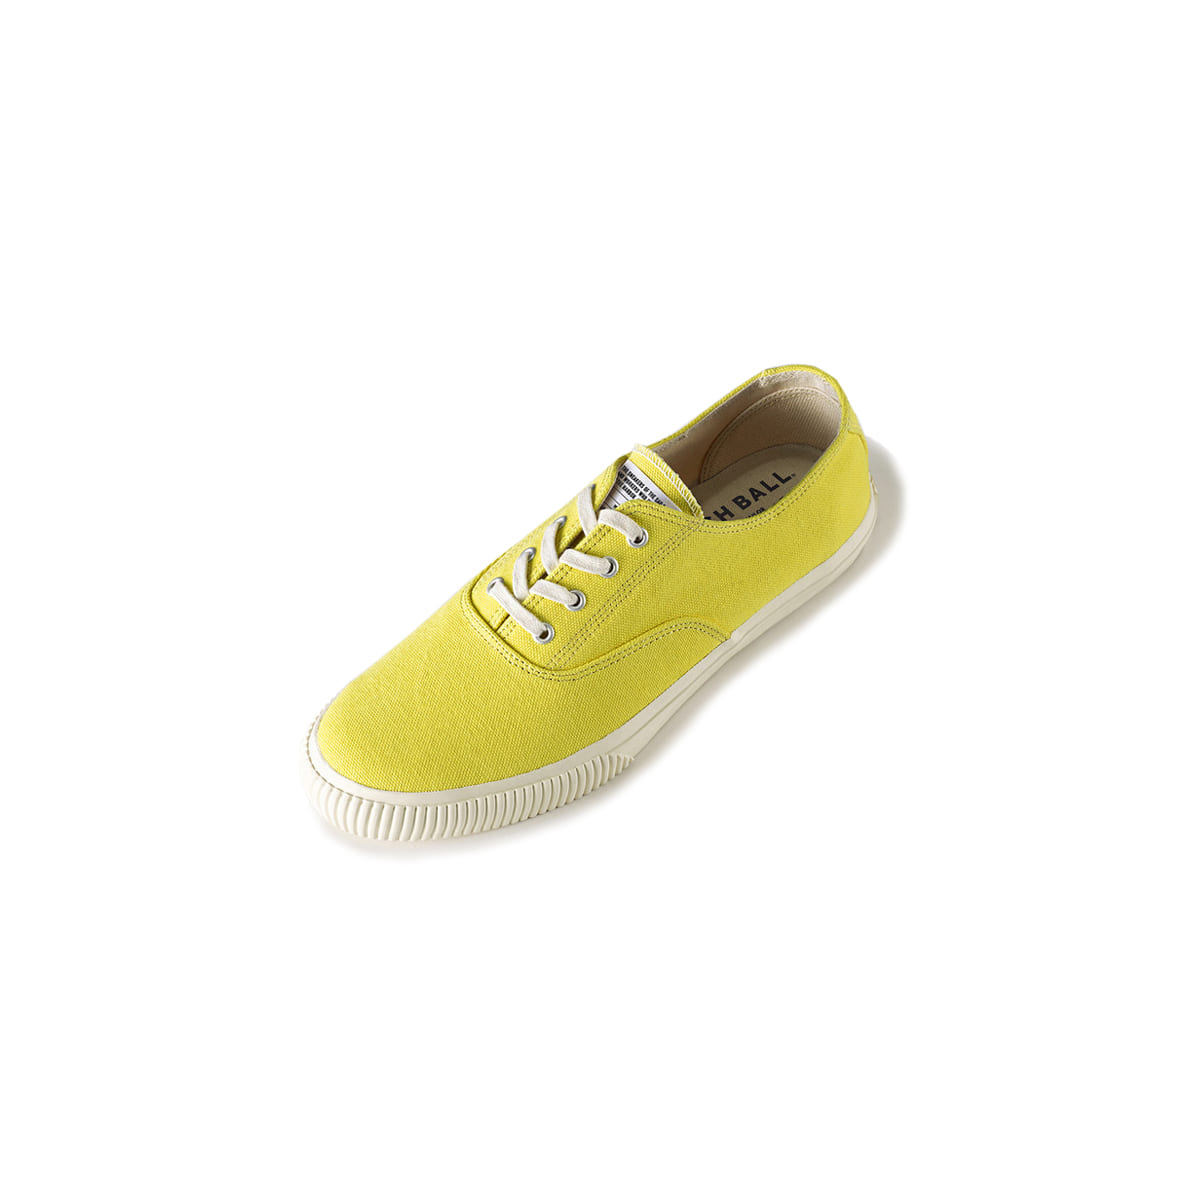 [BRUSHER] CATCH BALL DECKSHOE 'LEMON'